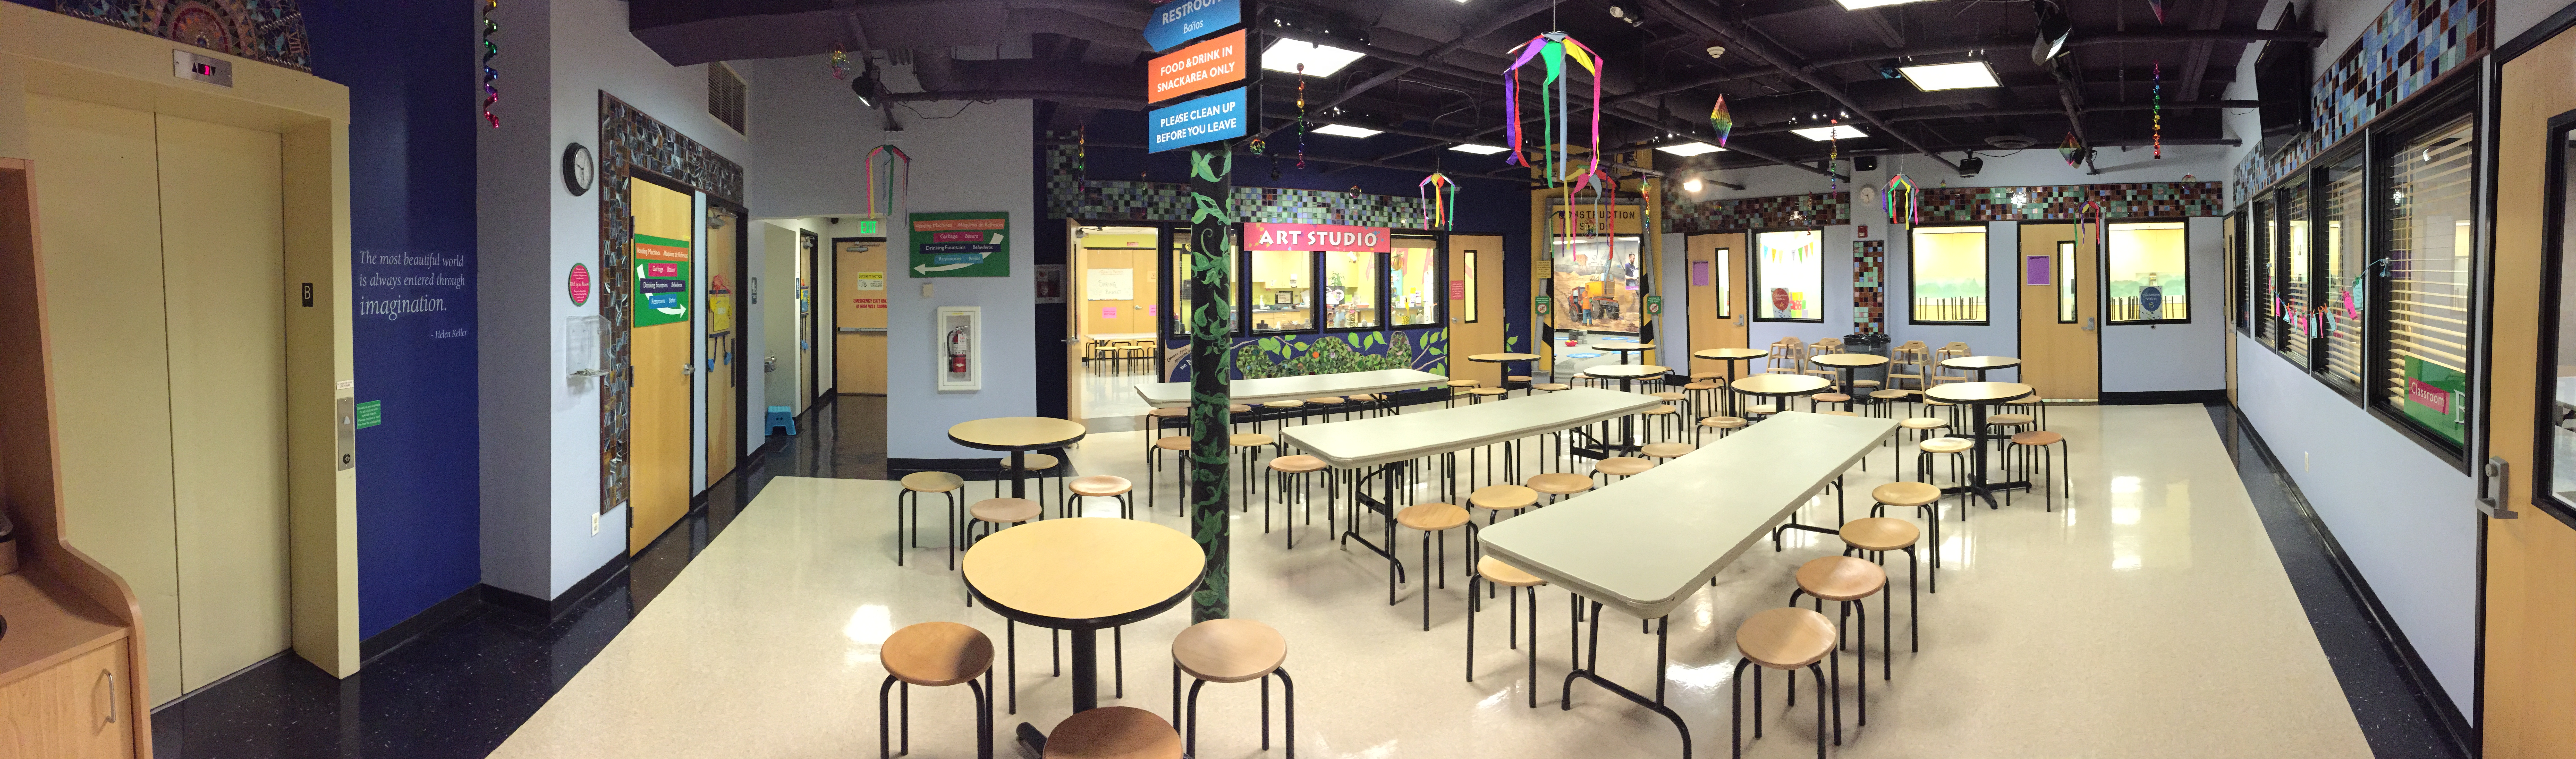 The Commons Area On Lower Level Of Museum Is A Comfortable E With Tables And Chairs To Enjoy Your Own Snacks